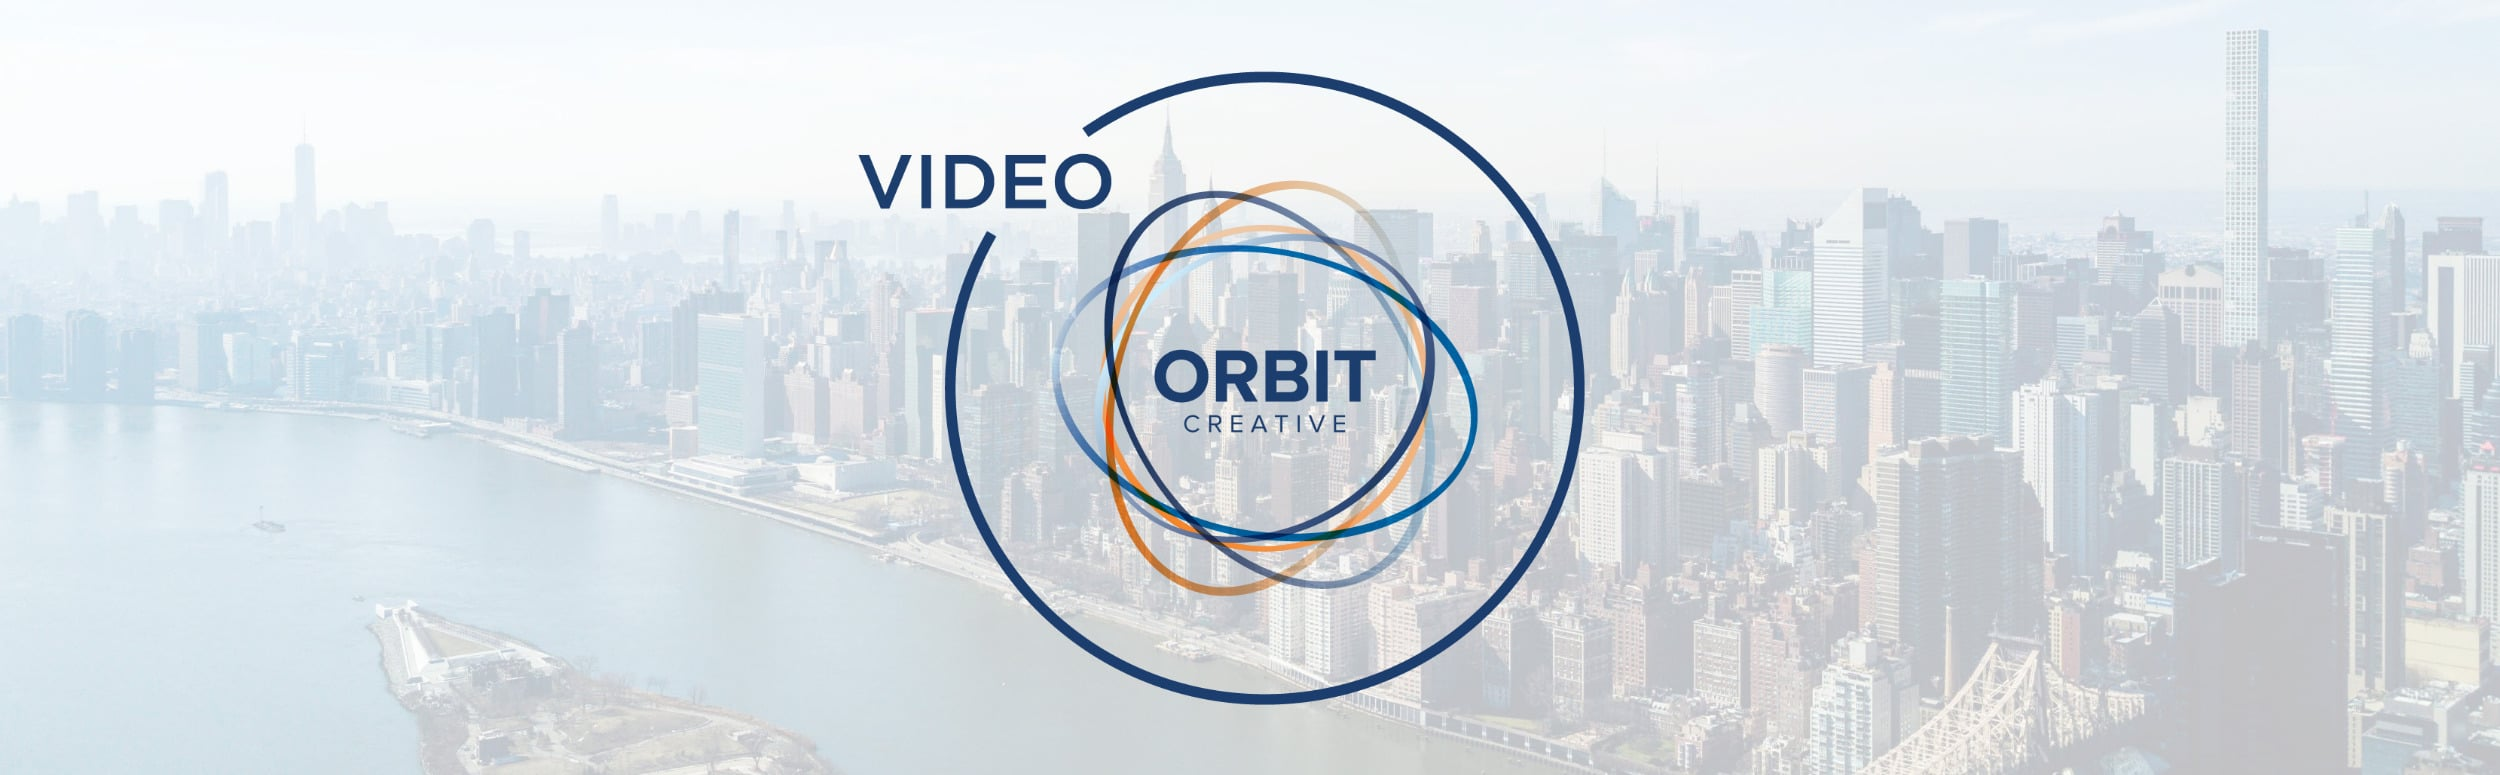 Orbit Creative Video Production